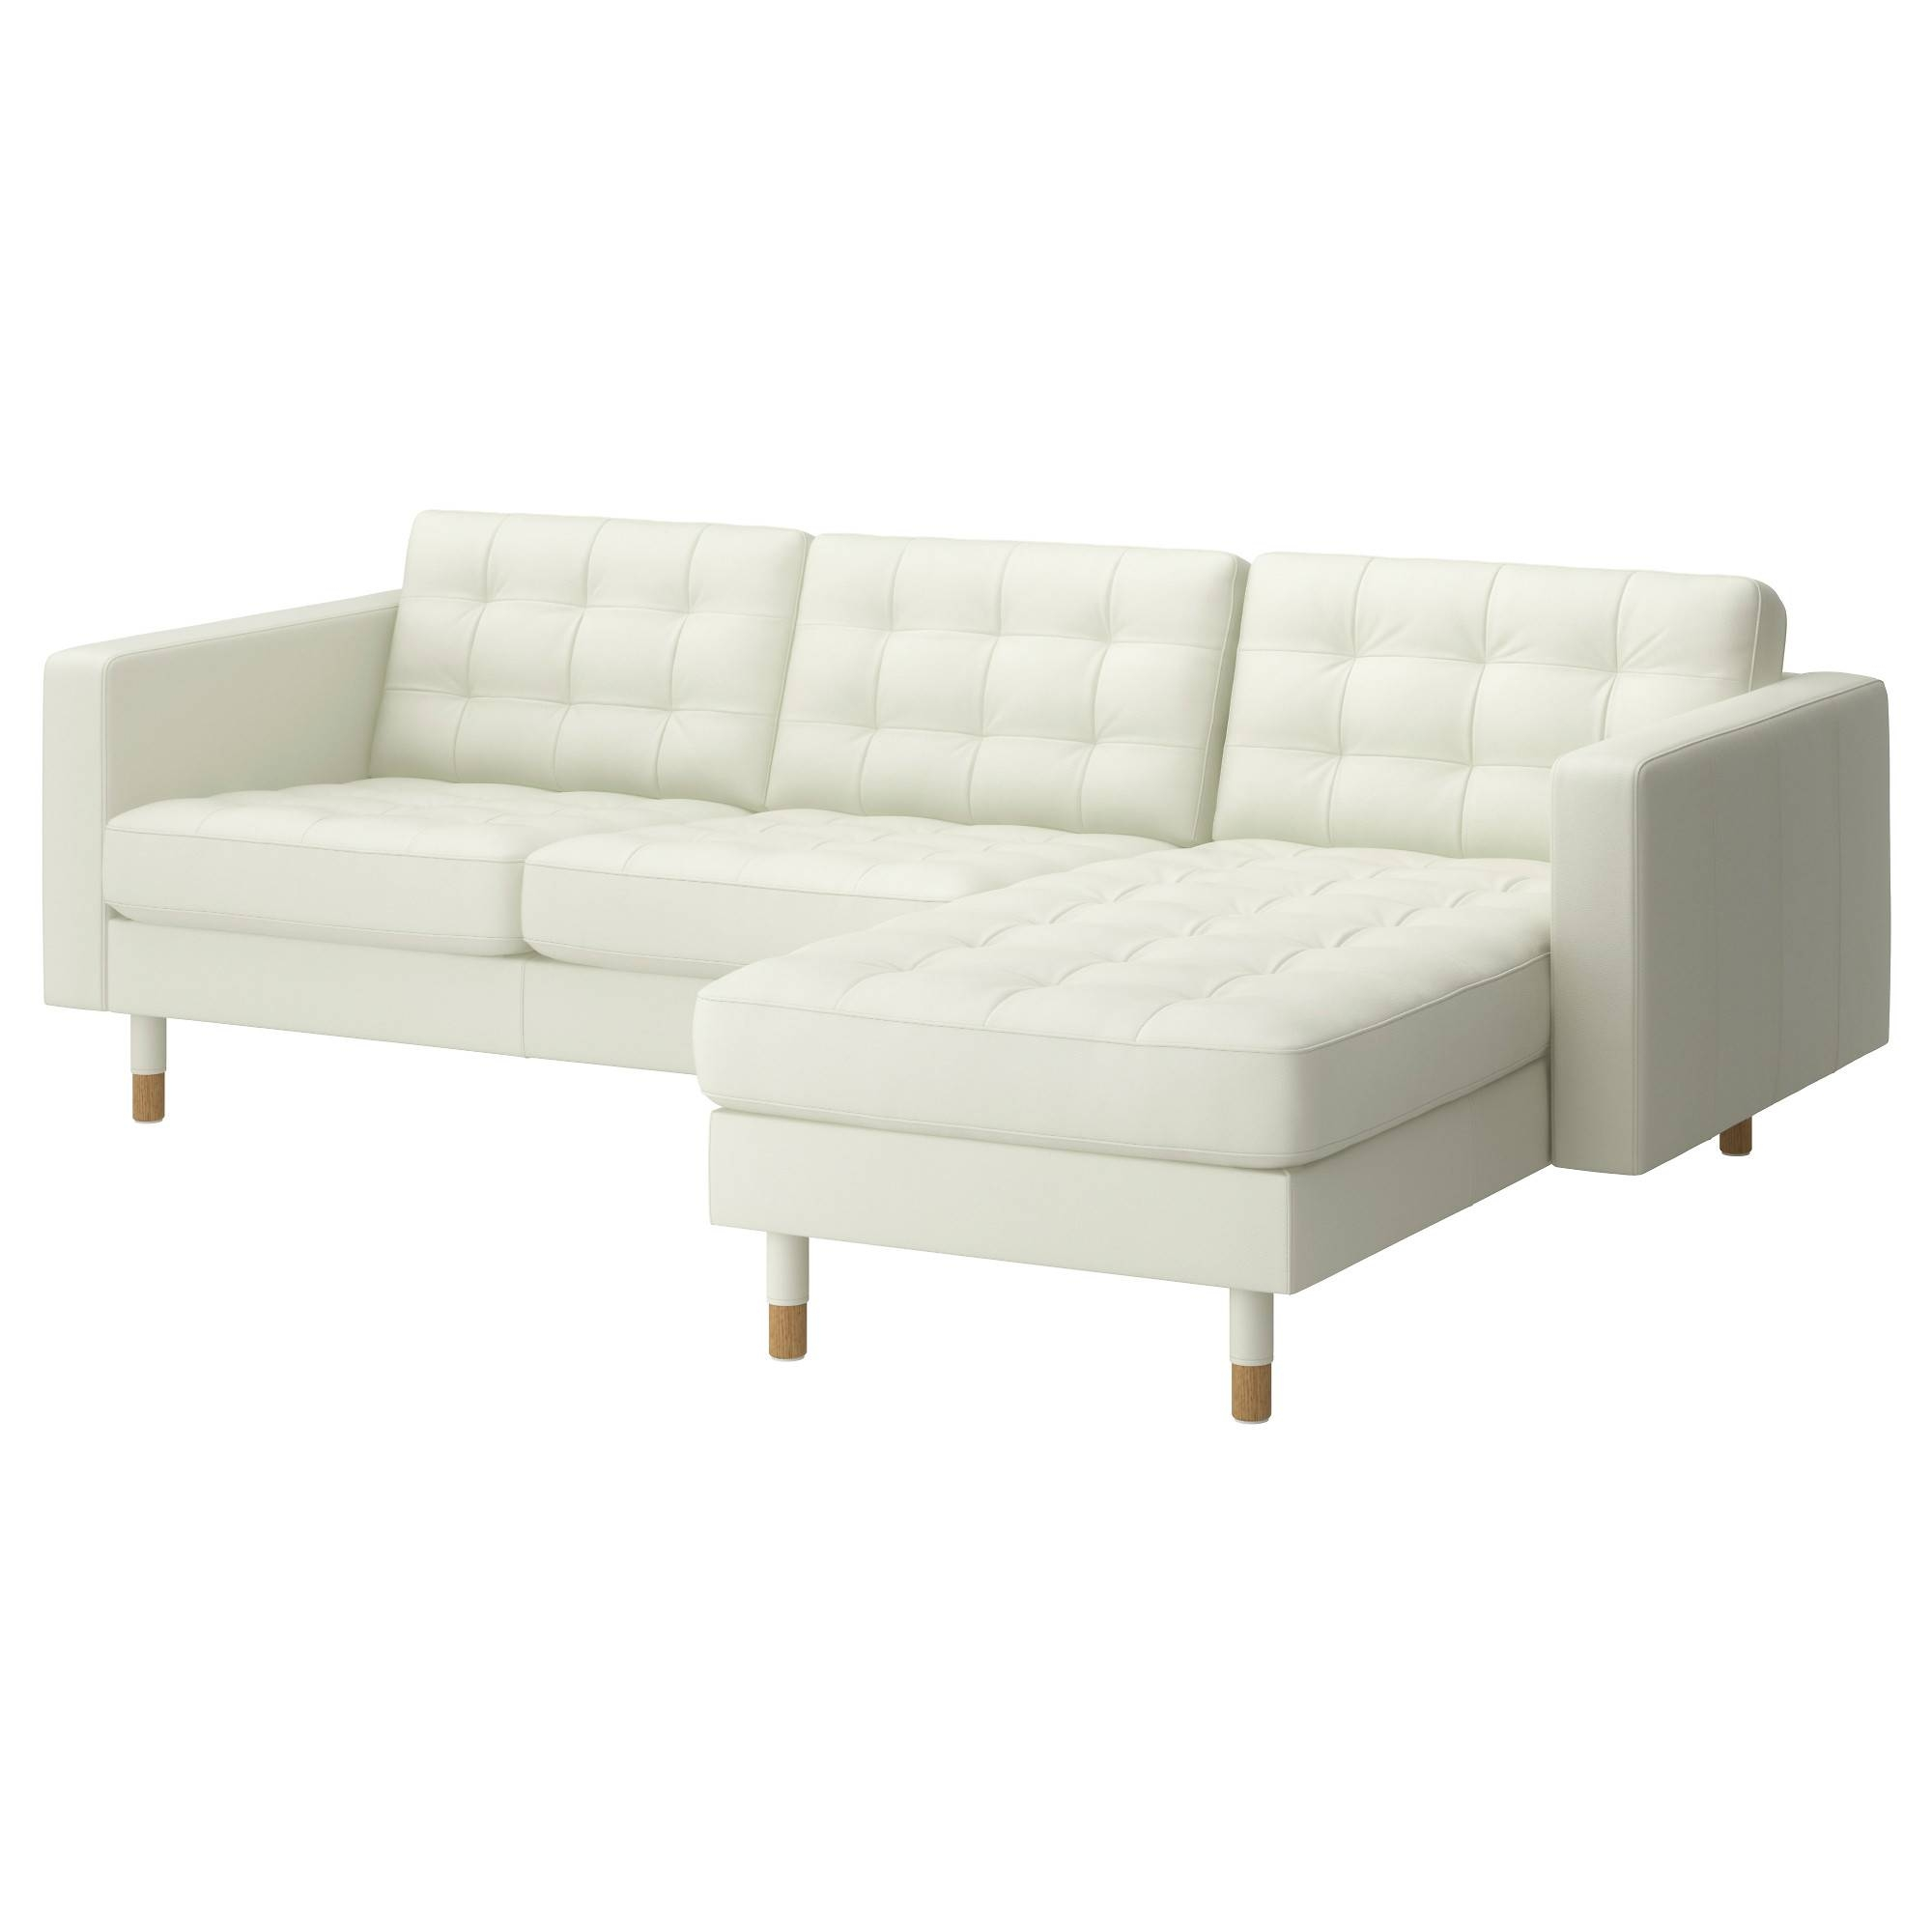 Landskrona Two-Seat Sofa And Chaise Longue Grann/bomstad White with regard to Ikea Chaise Lounge Sofa (Image 22 of 30)